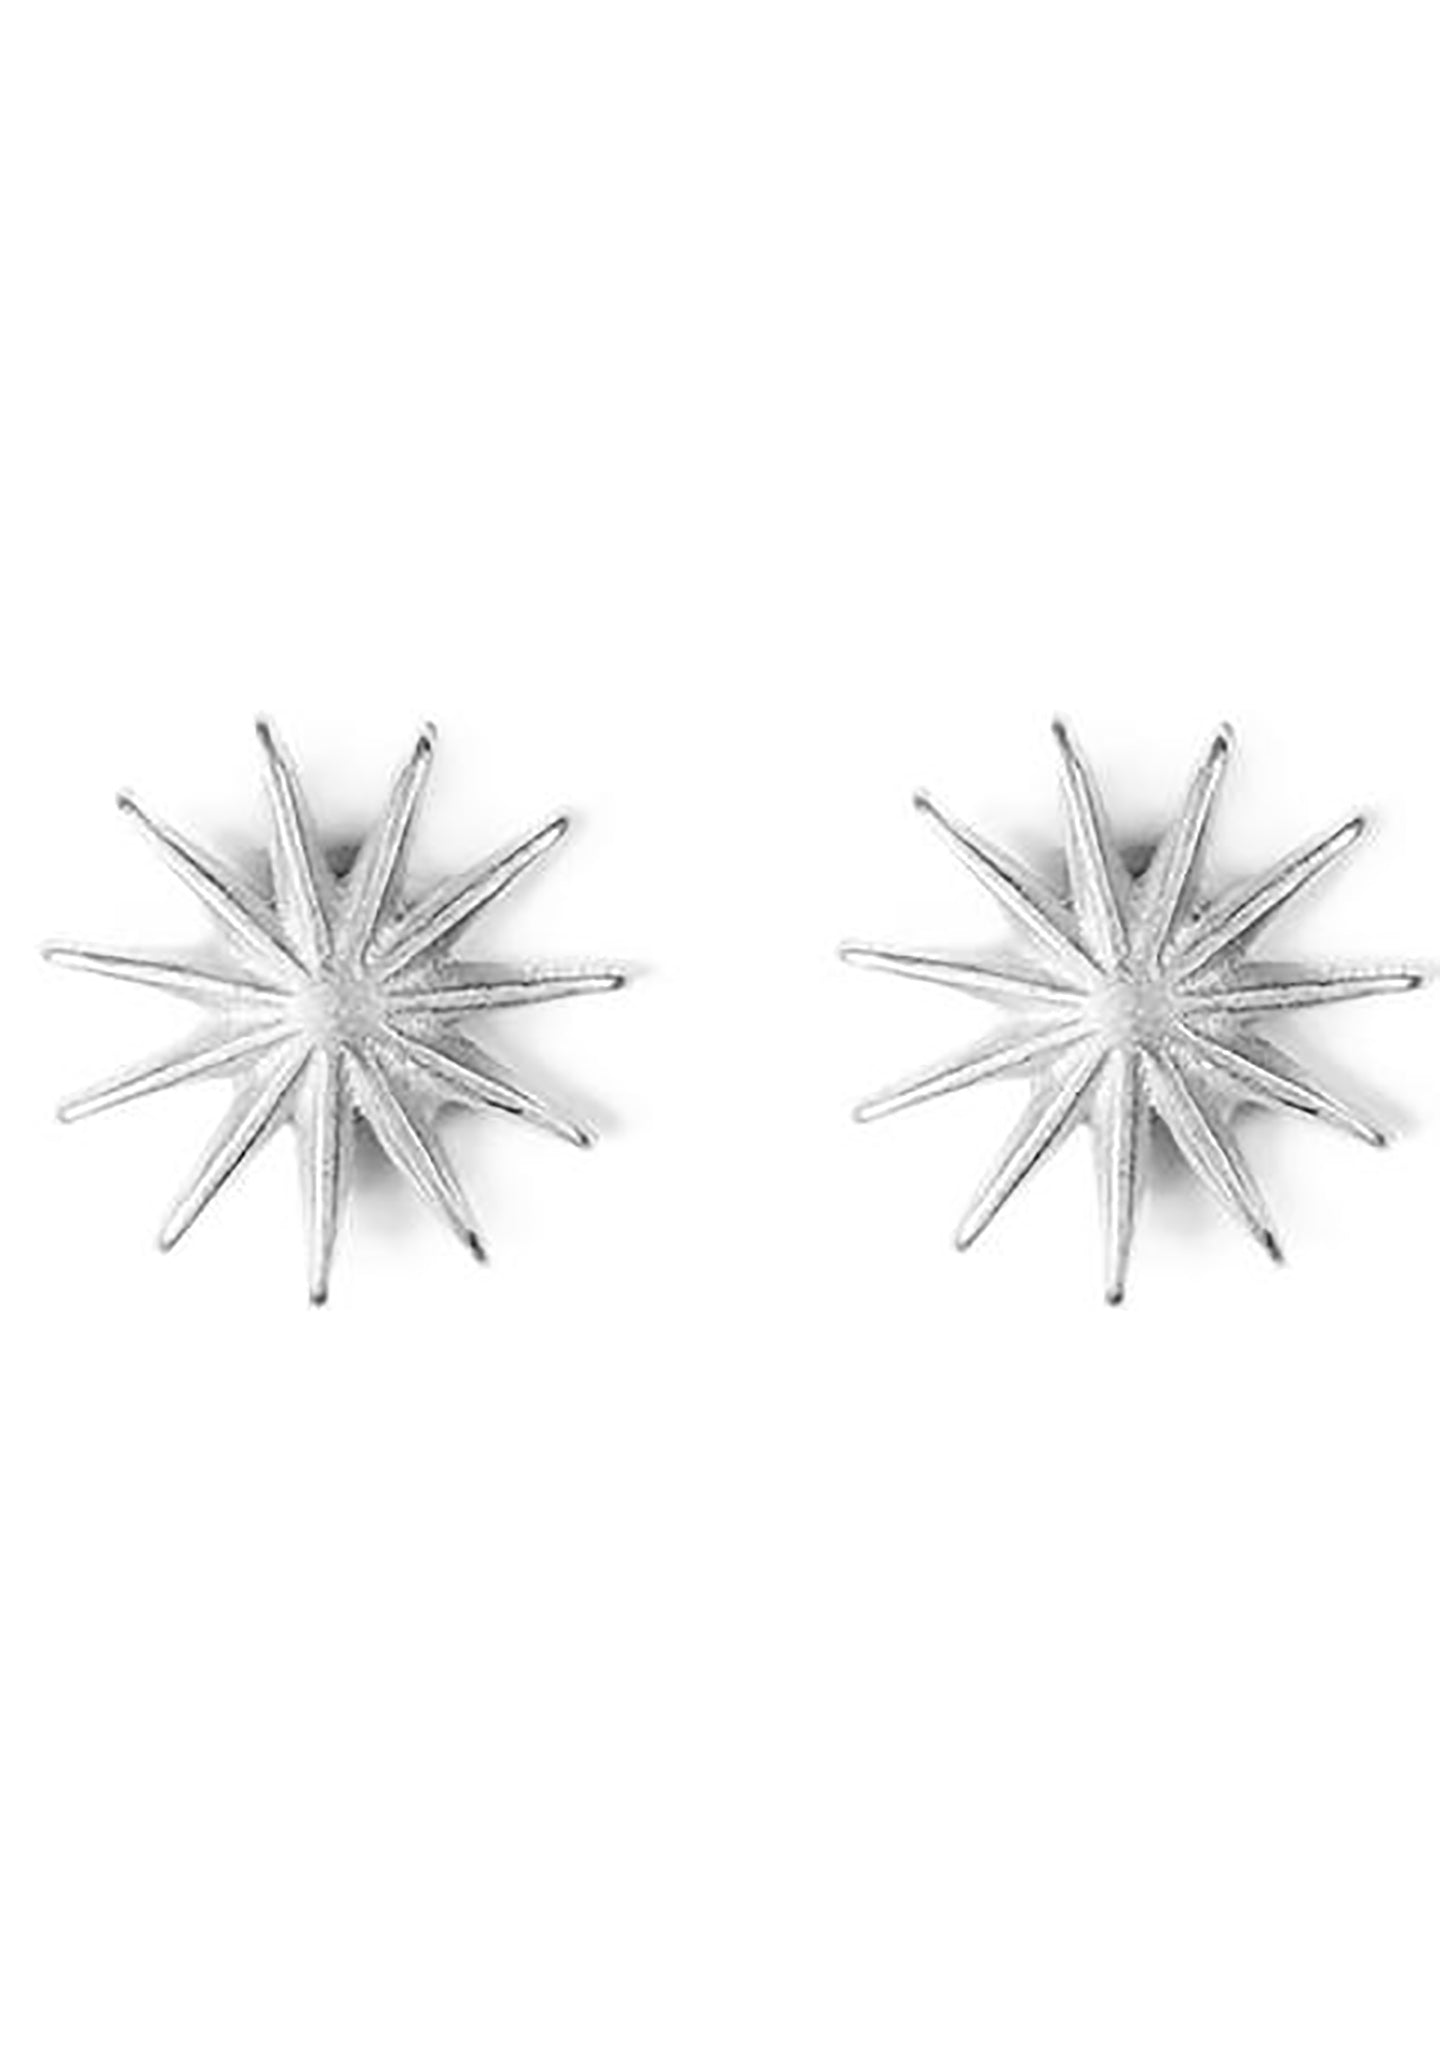 DOGEARED It's The Little Things Starburst Earrings in Silver